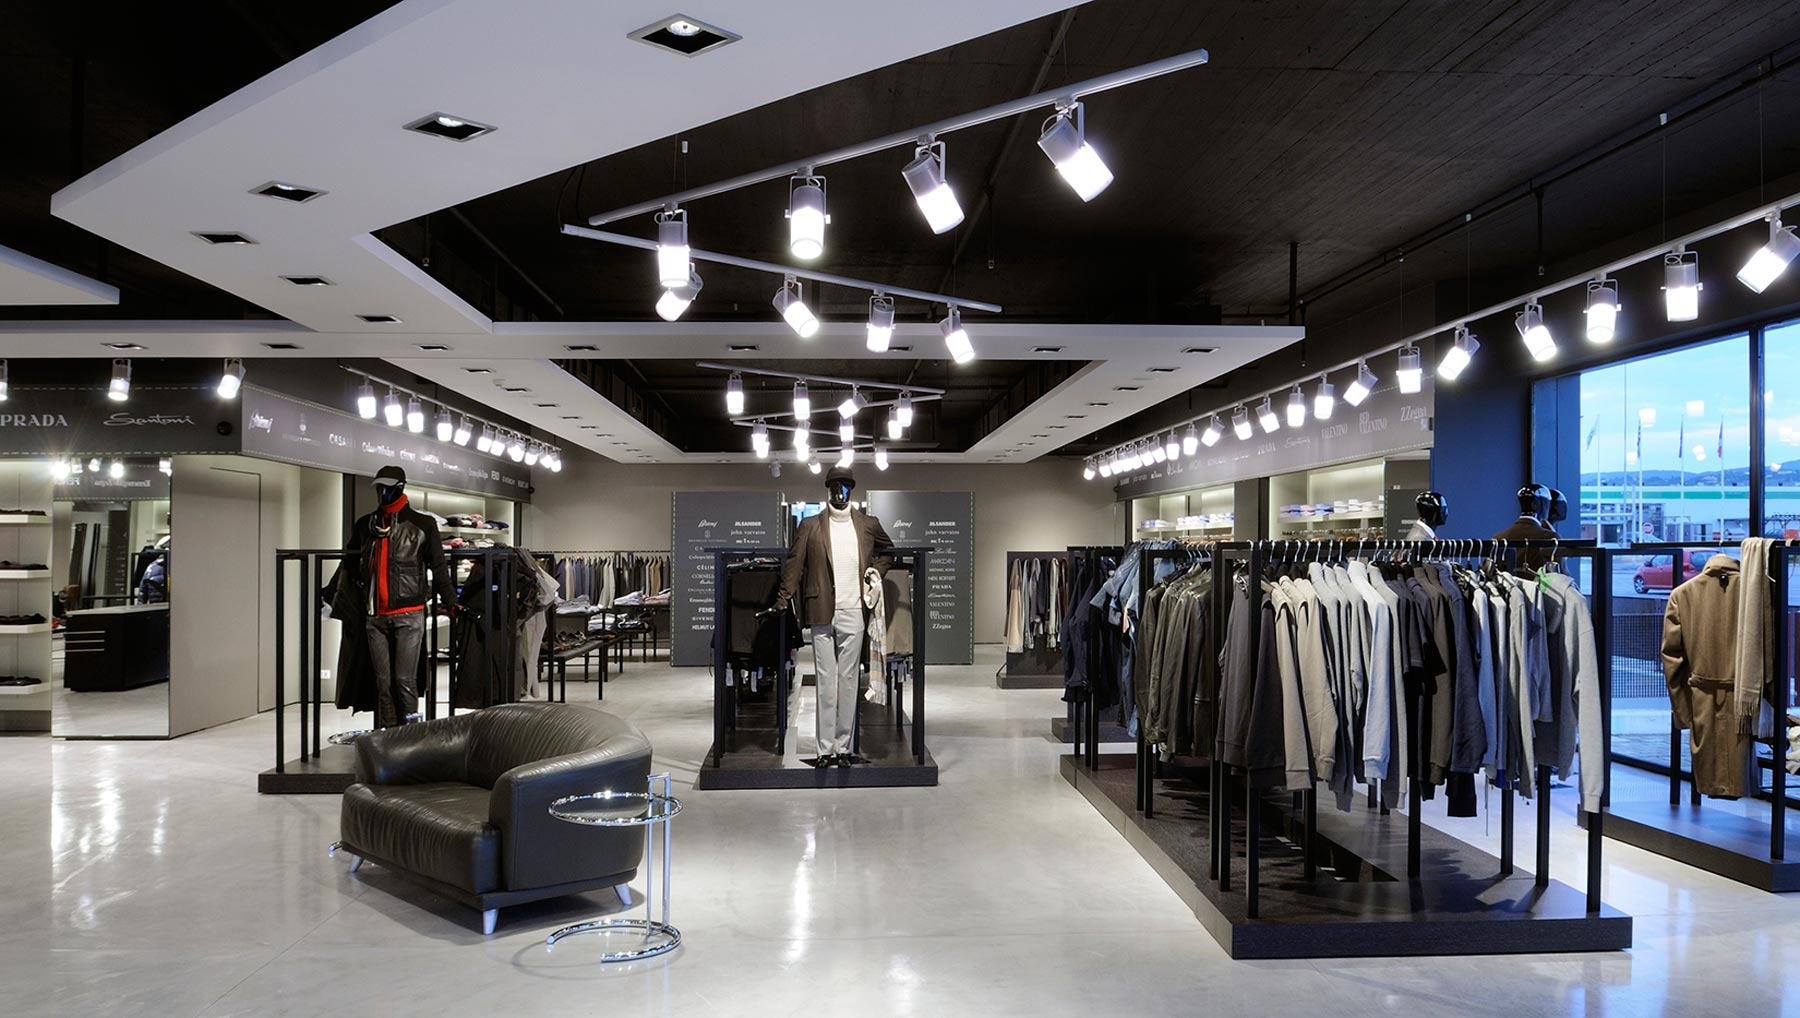 Ceiling Design Retail Commercial Electrician Knoxville Tn Lloyd S Electric Service